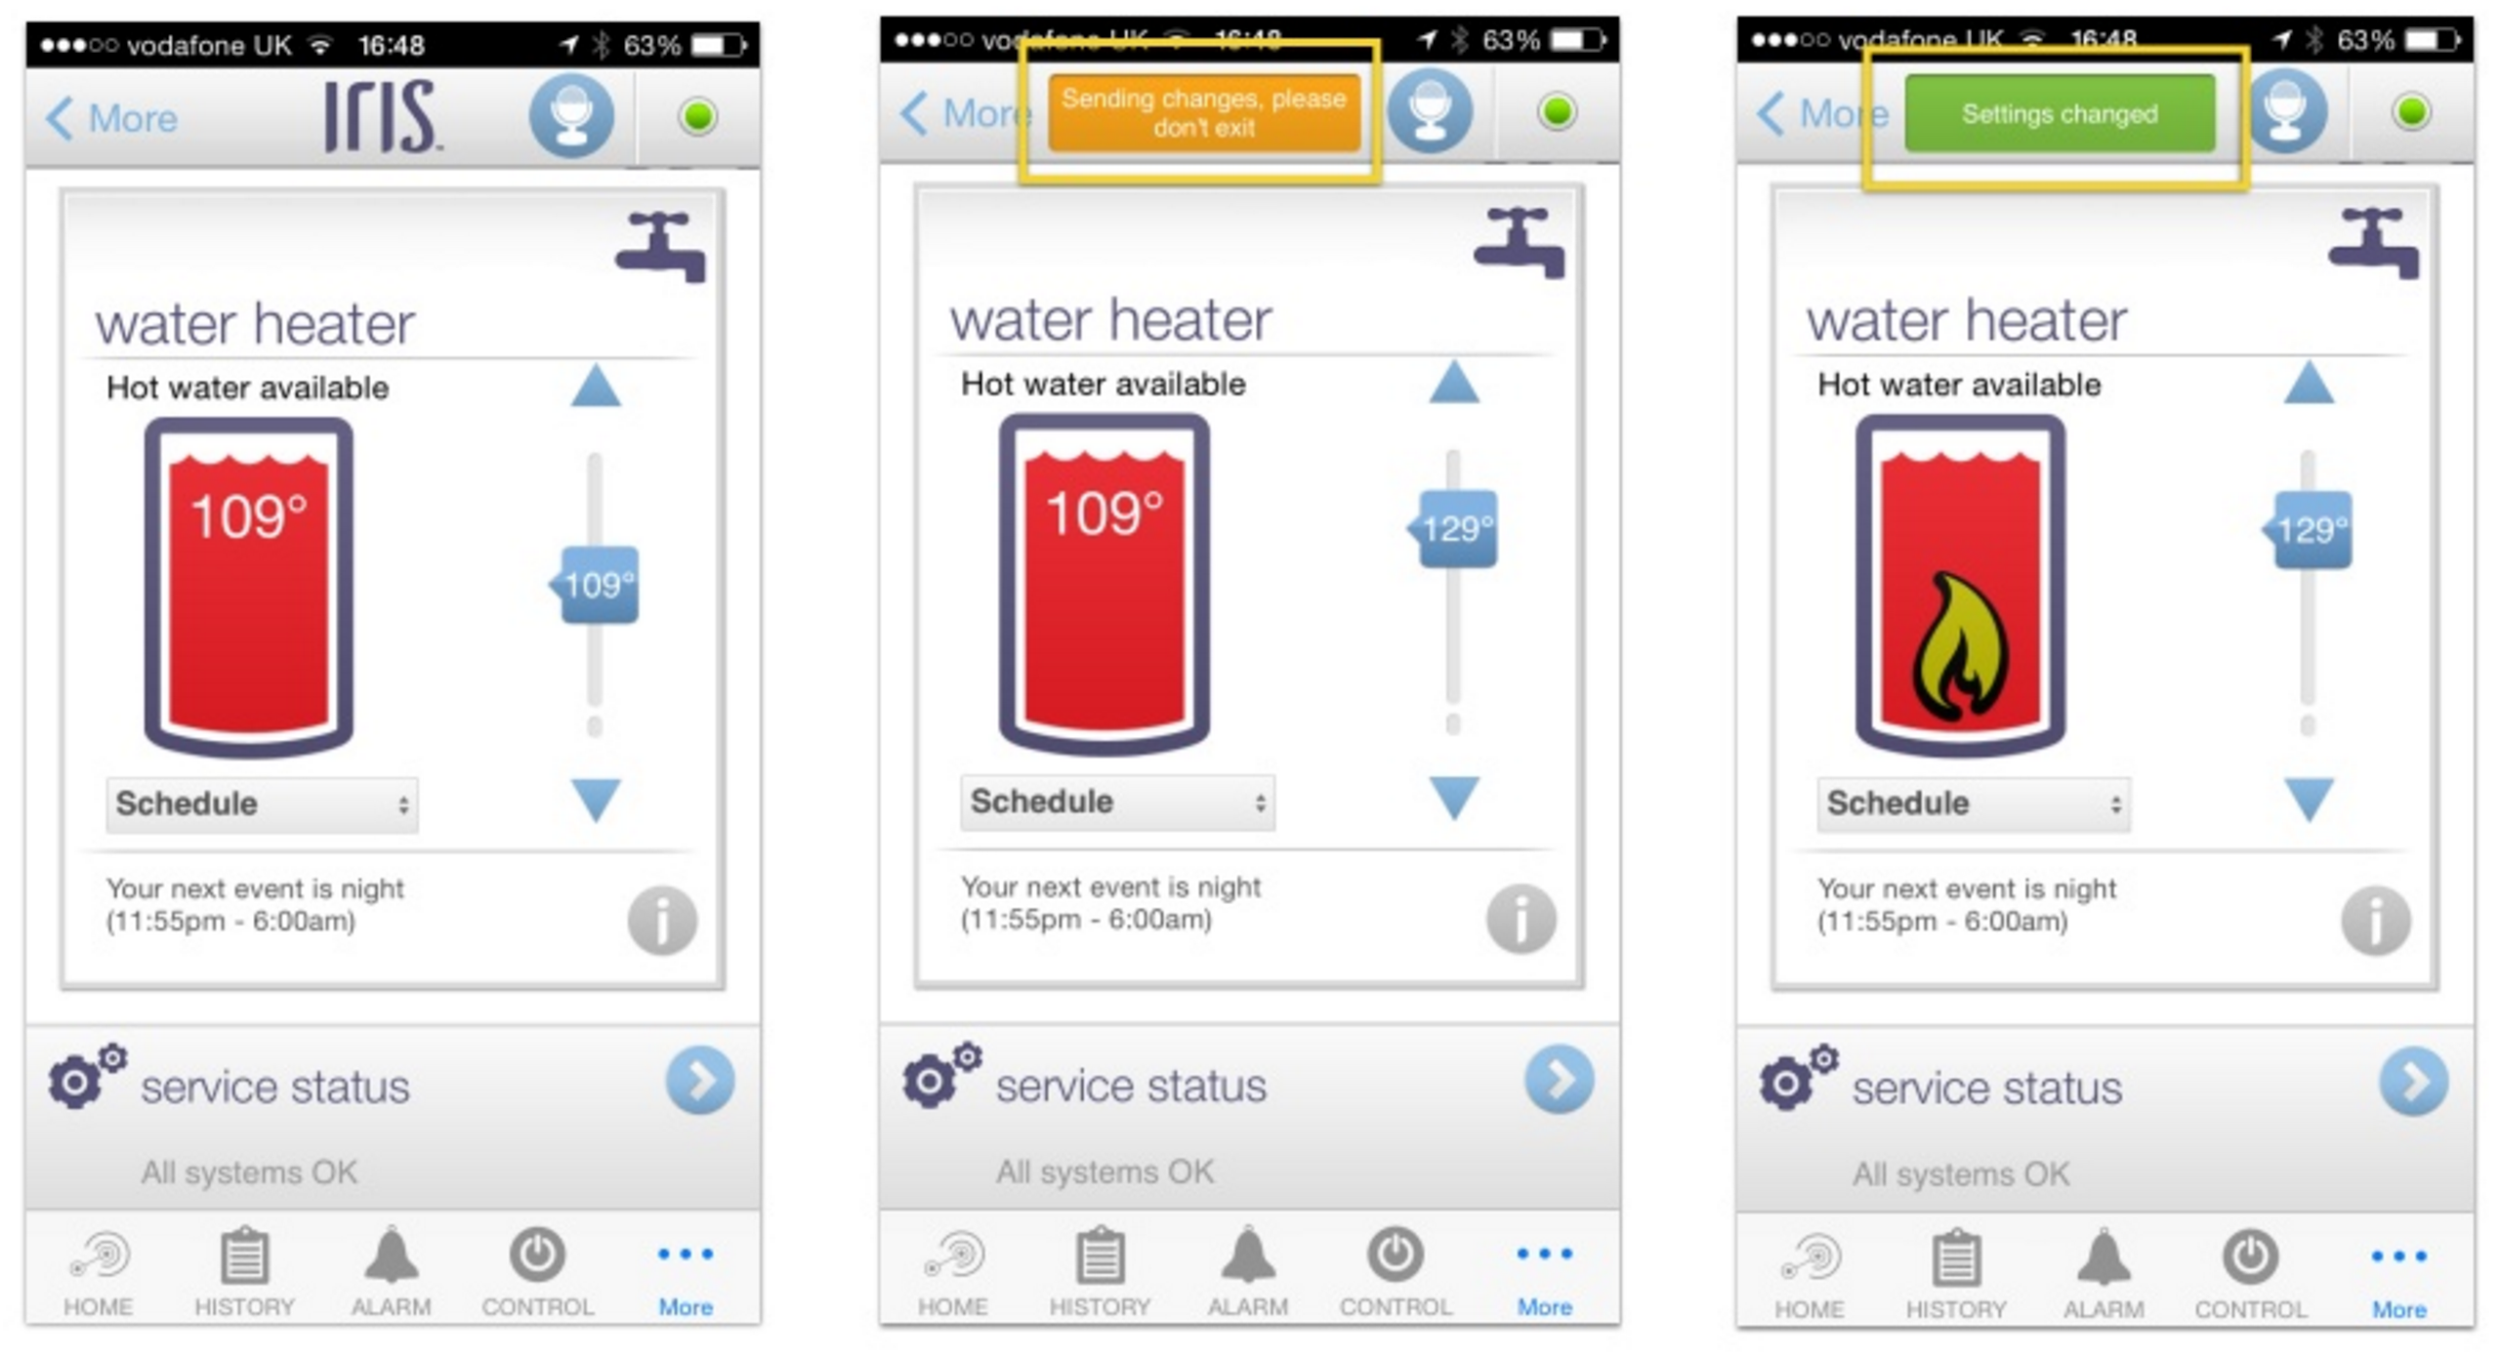 Figure 3: The Lowes Iris water heater UI clearly shows the user the status of an action